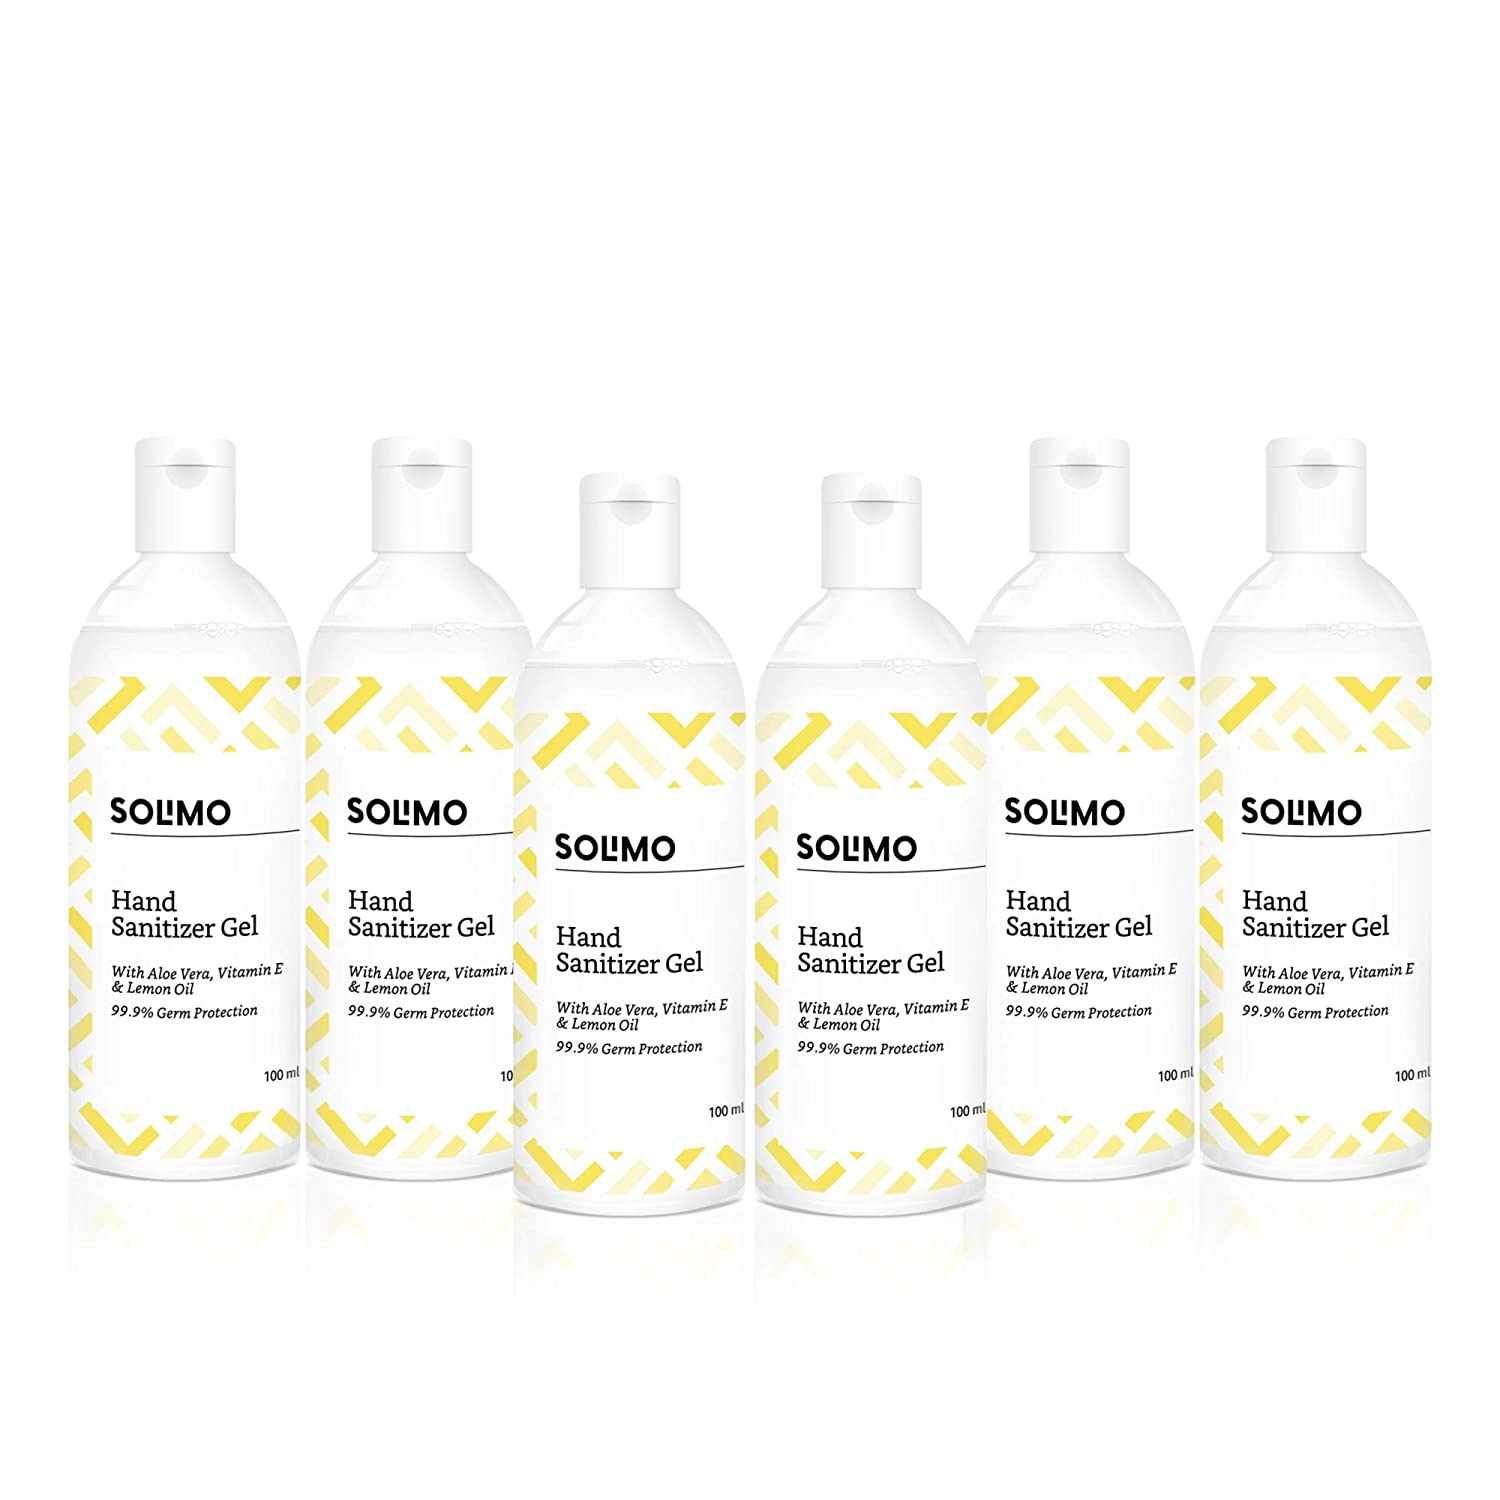 Amazon Brand Solimo Hand Sanitizer Gel, Pack of 6 for ₹126